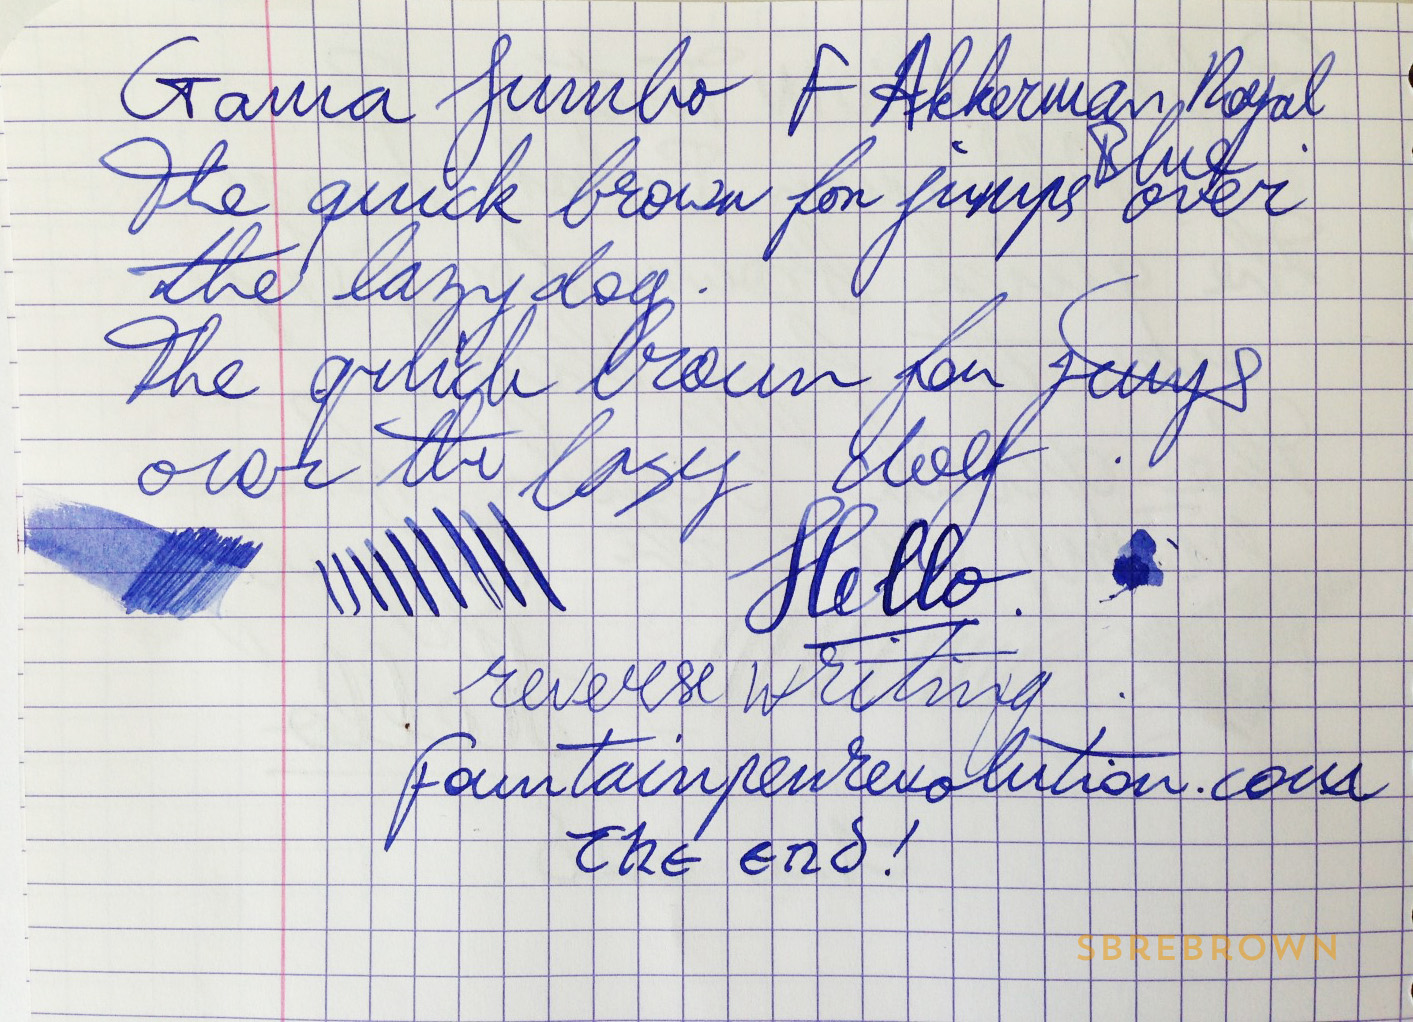 SB. Gama Jumbo Acrylic Fountain Pen Review (6)